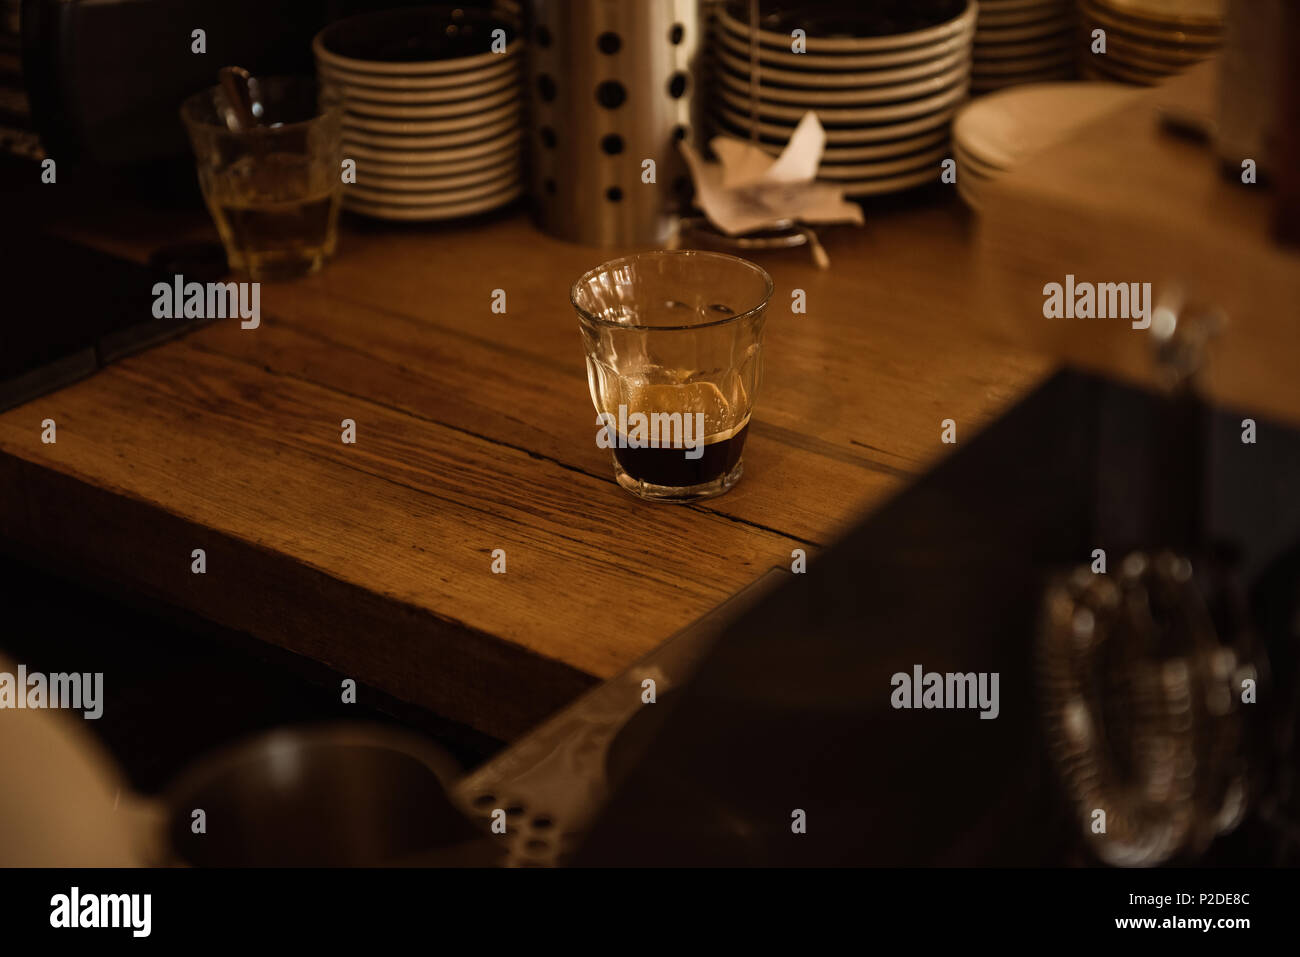 Empty glass on wooden table - Stock Image